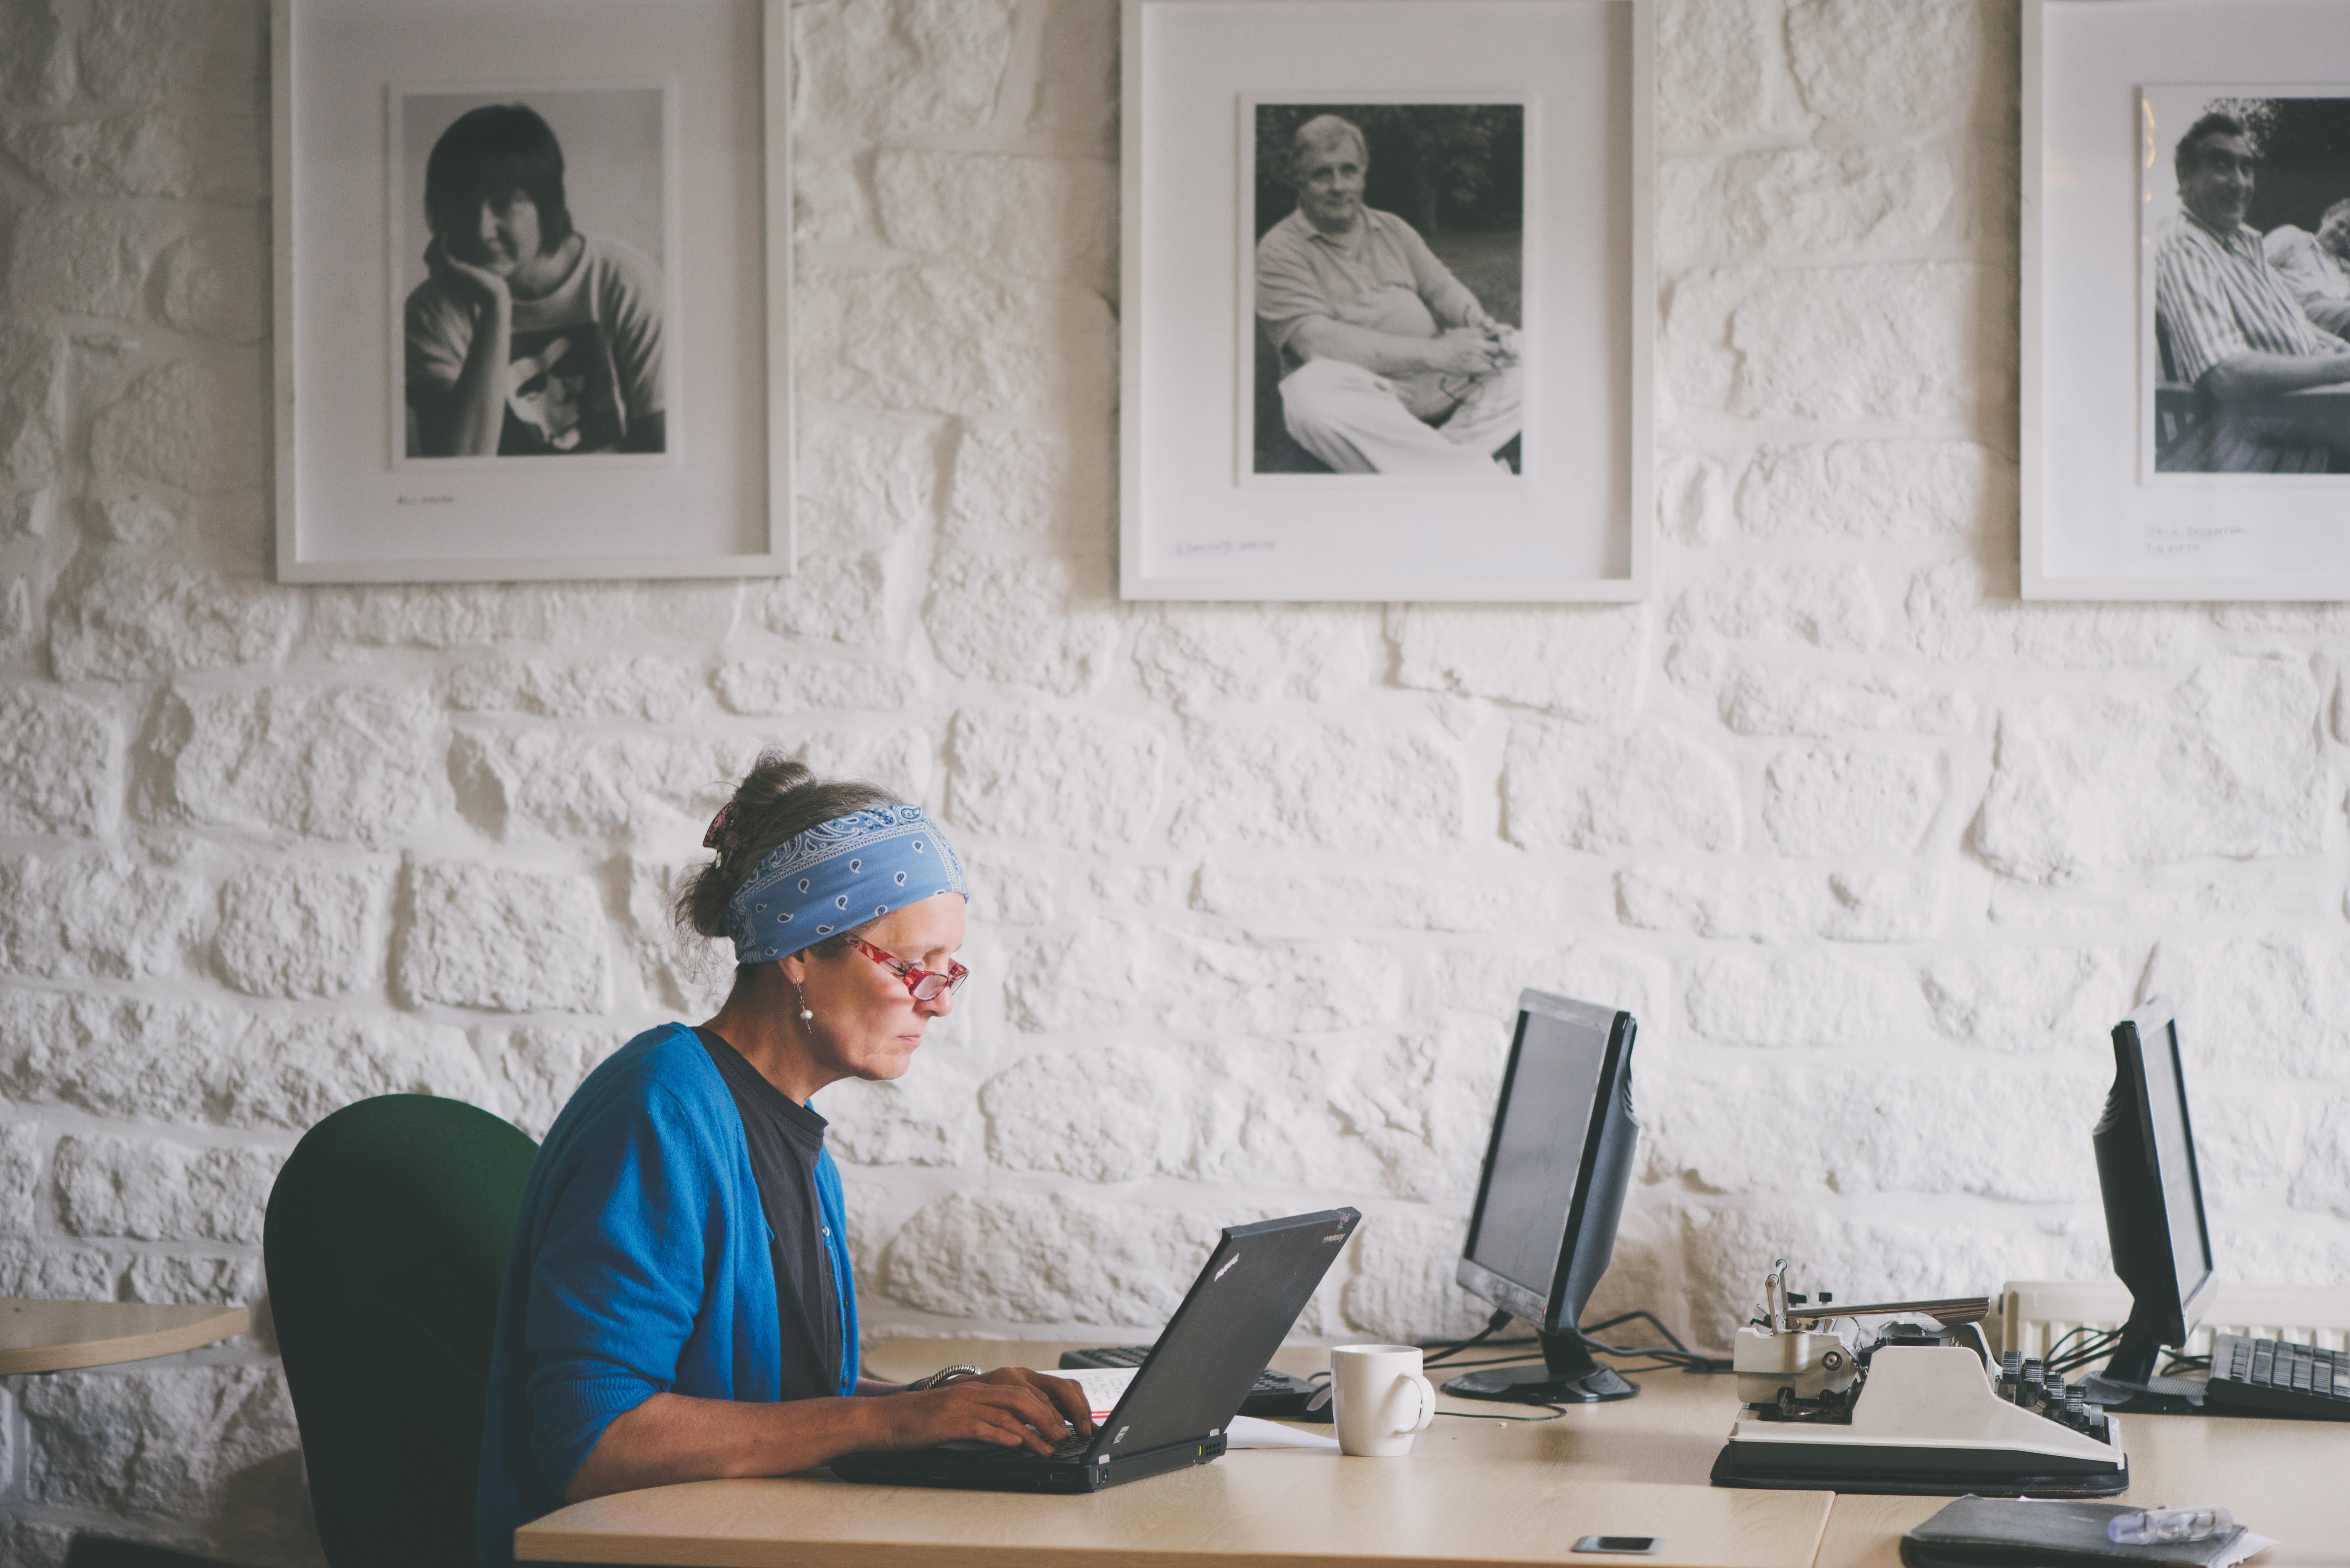 Top 10 art holidays and creative writing retreats in the UK